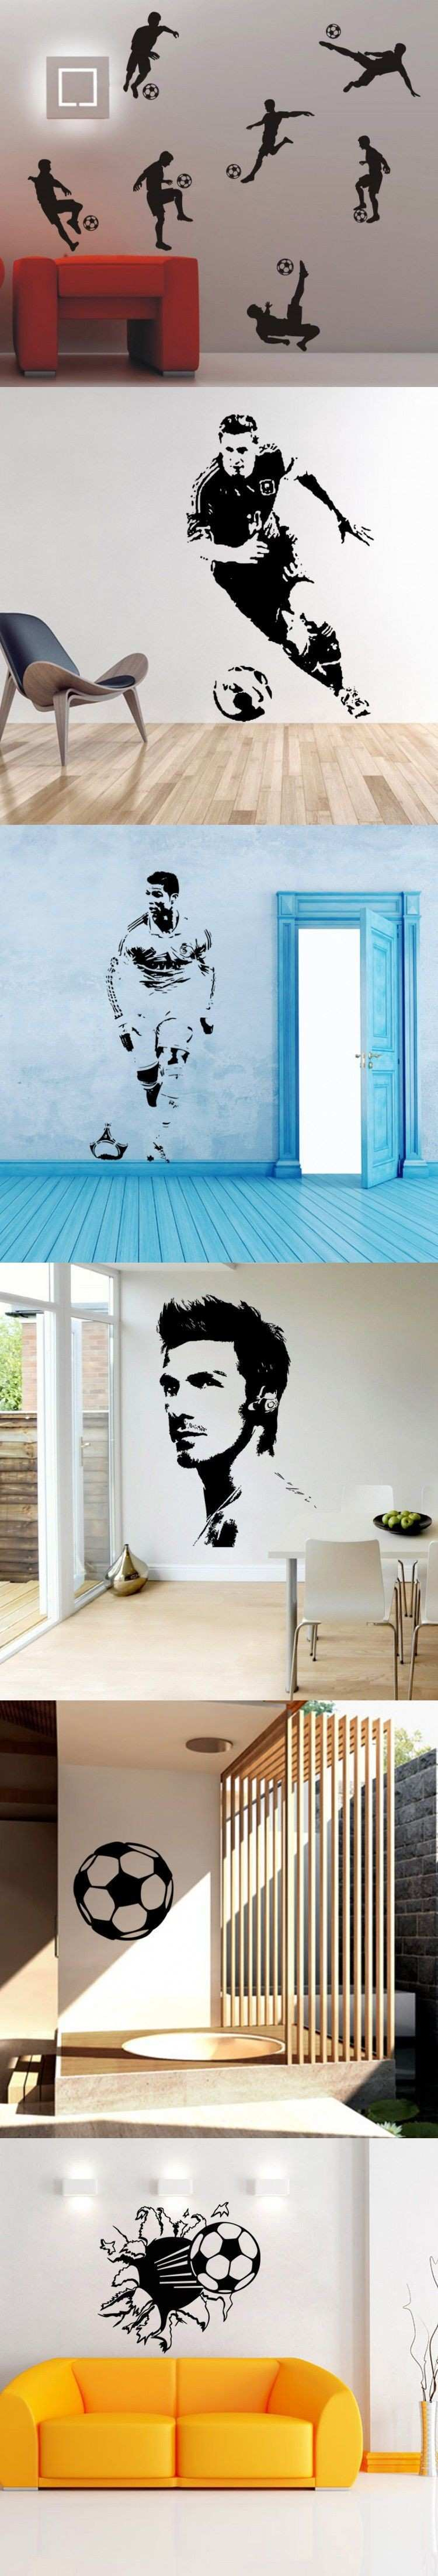 Soccer Football and Famous Soccer Players Wall Stickers Home Decor